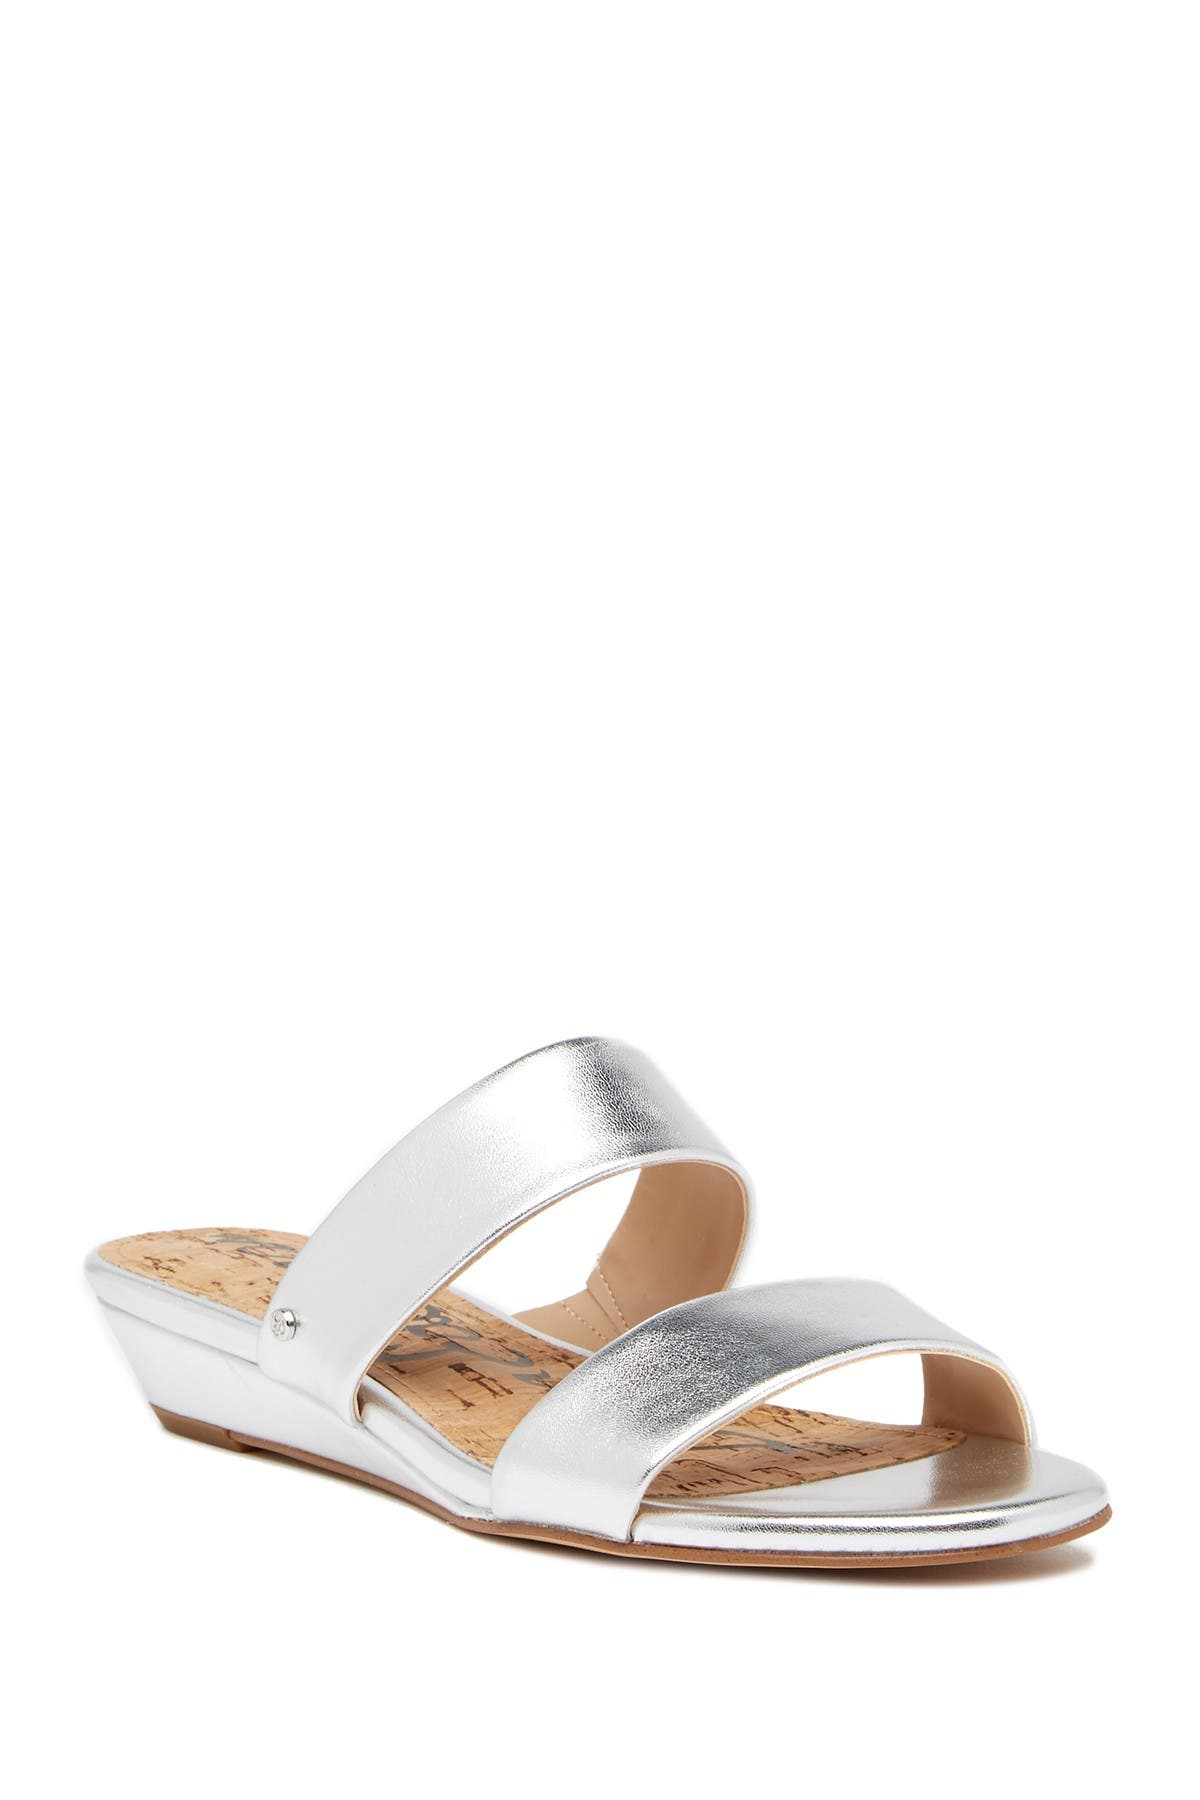 Image of Sam Edelman Lanelle Metallic Slide Sandal